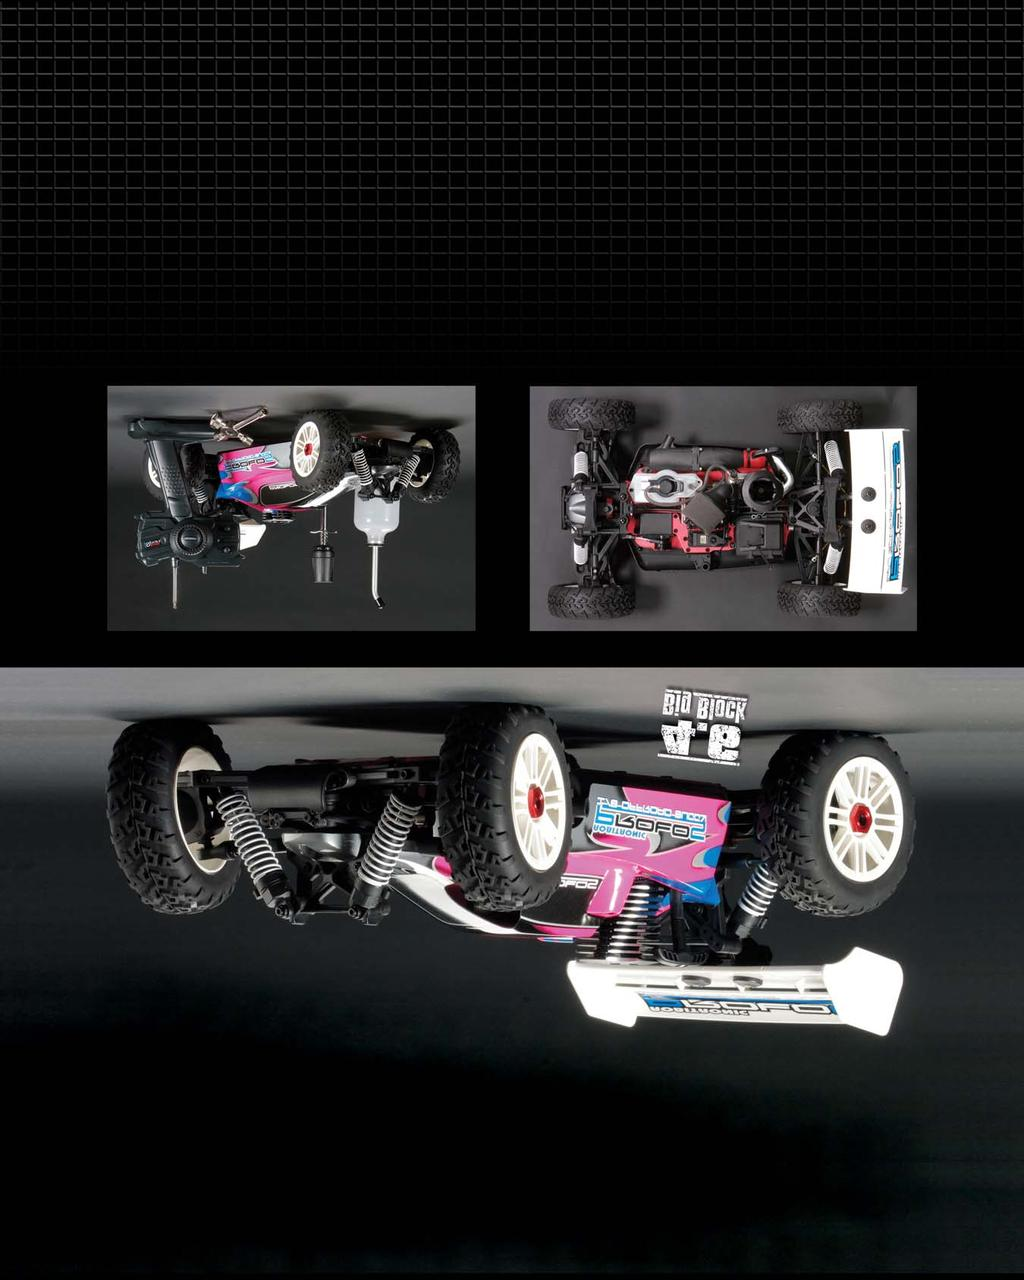 Features 4WD Shaft-Drive System for better handling and traction Powerful Axial.